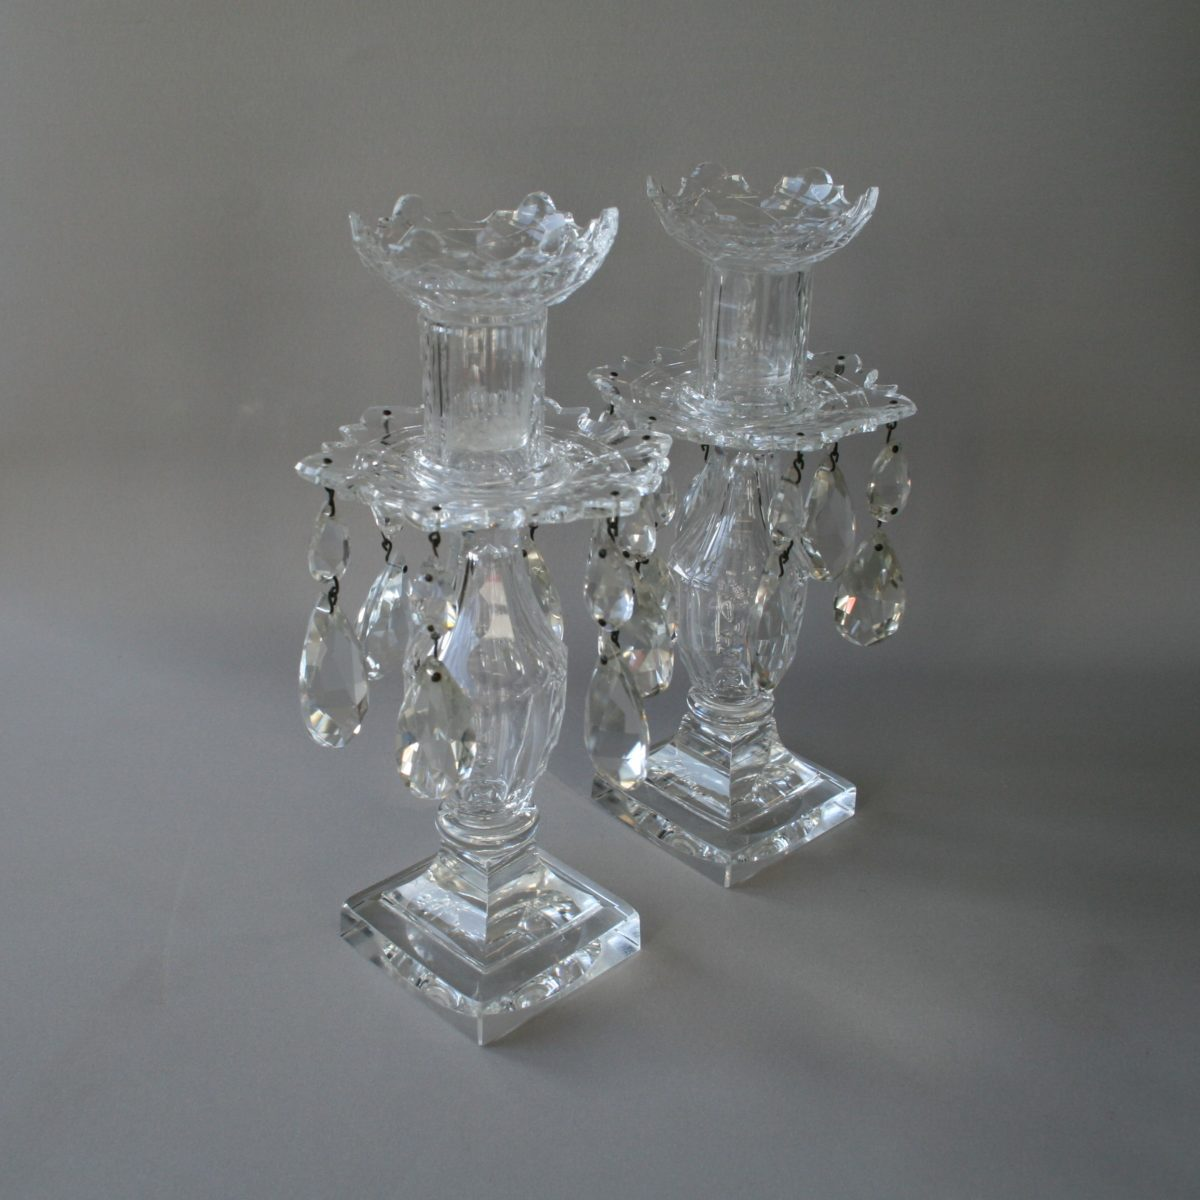 candlesticks with glass lustres/williamsantiques